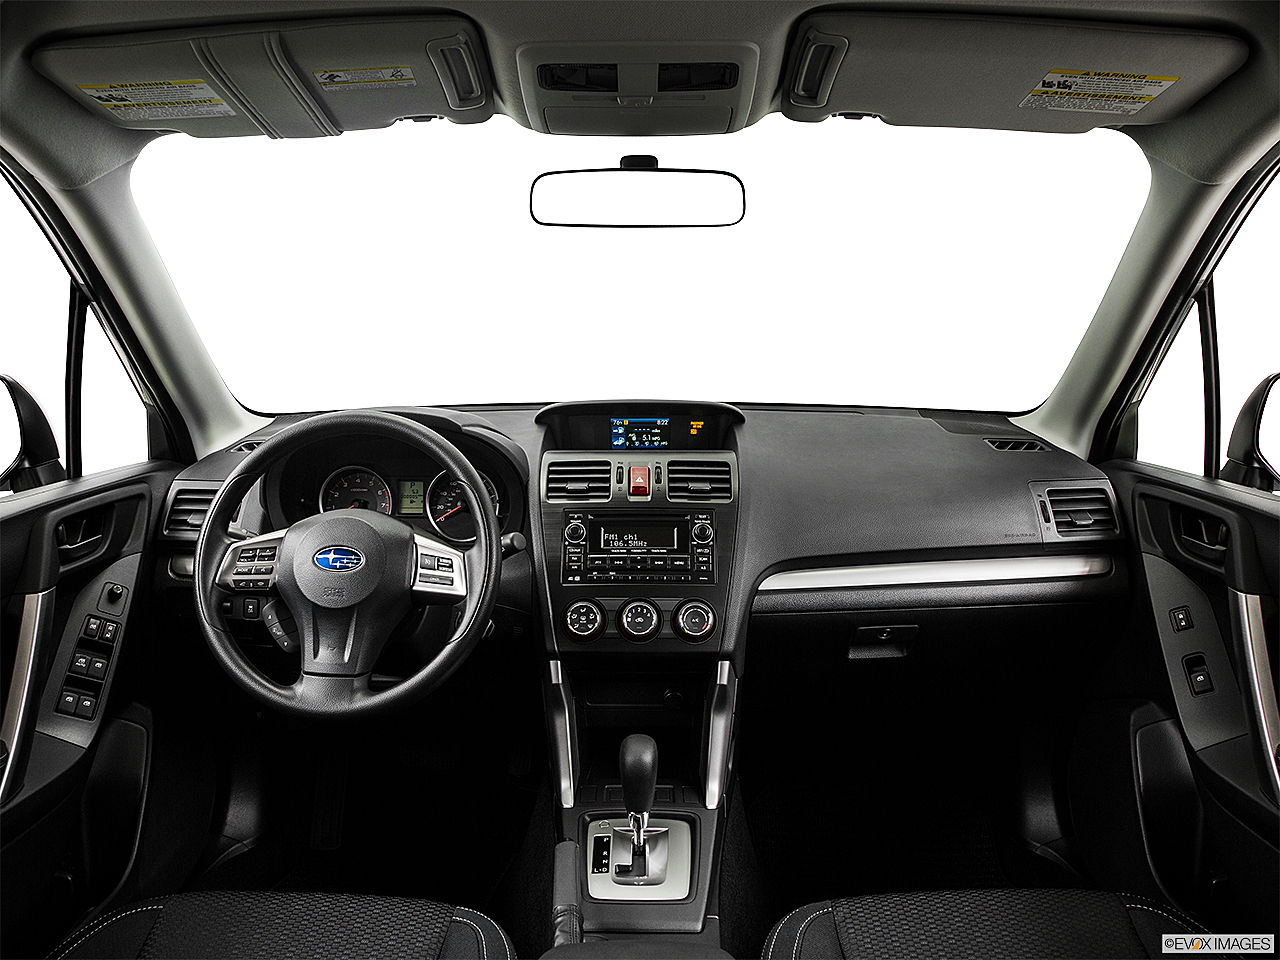 2015 subaru forester awd 4dr wagon cvt research groovecar. Black Bedroom Furniture Sets. Home Design Ideas